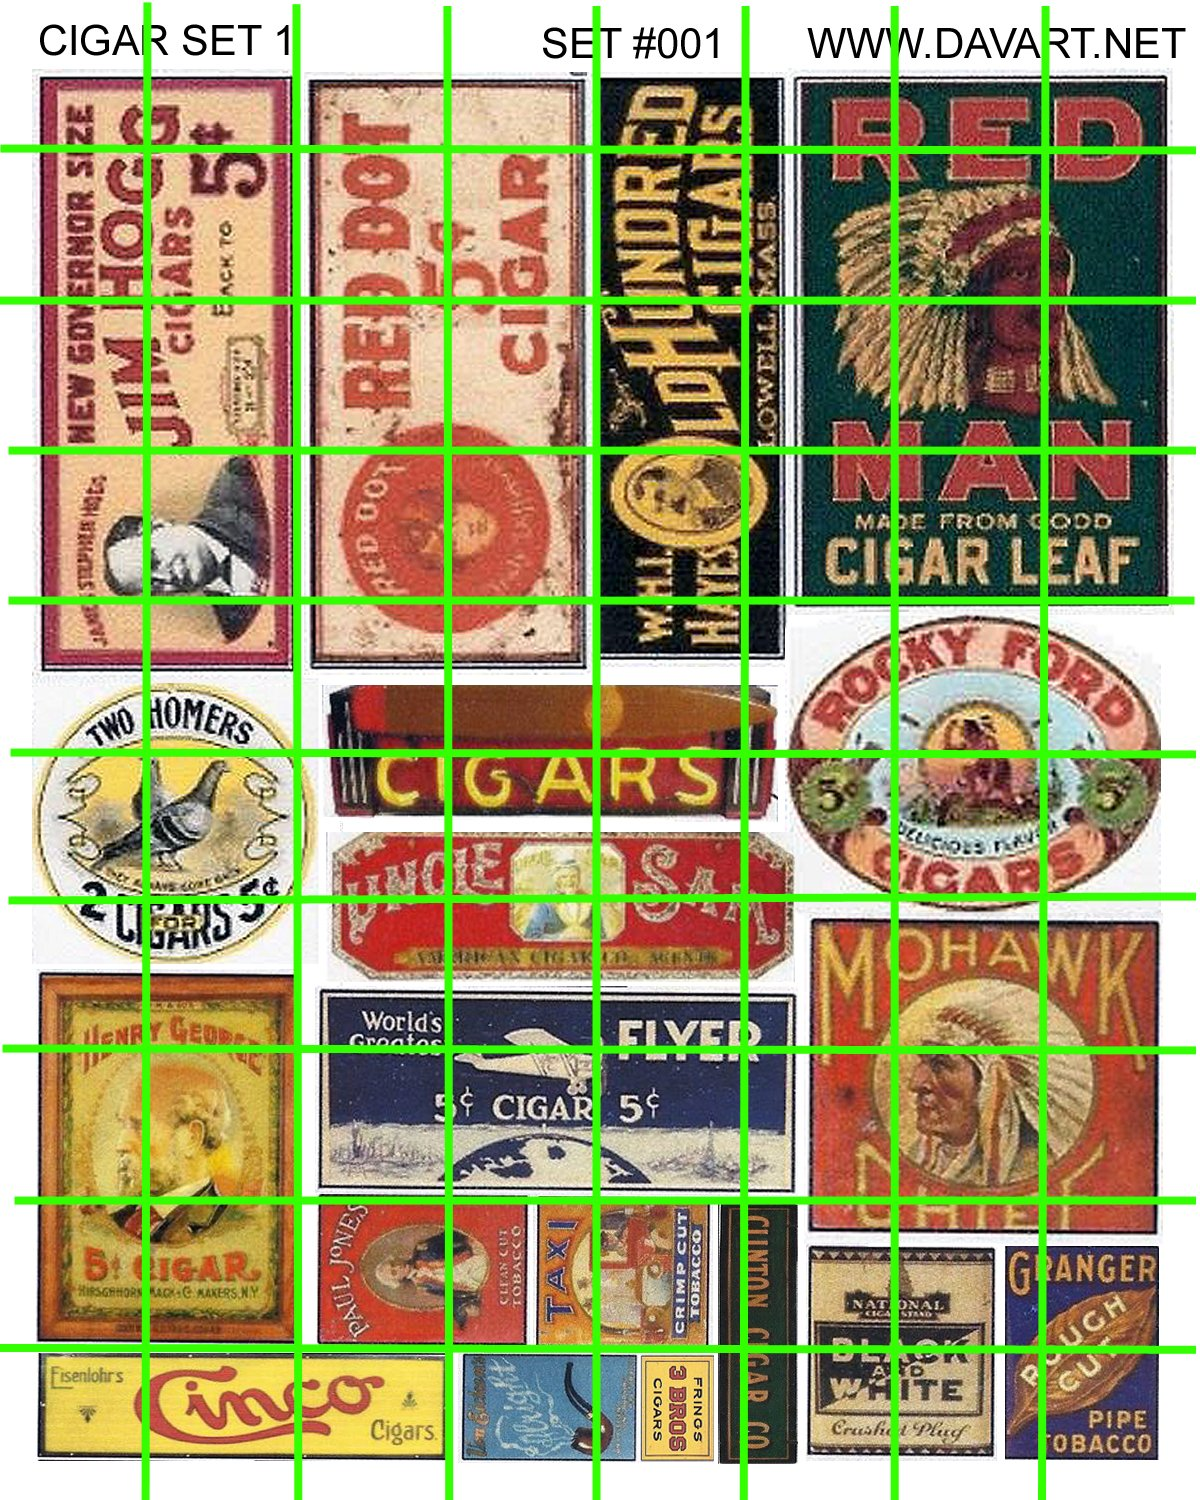 2001 - AD SET GHOST SIGNS 1 Cigars Cigarette Tobacco Ad Sign Decals